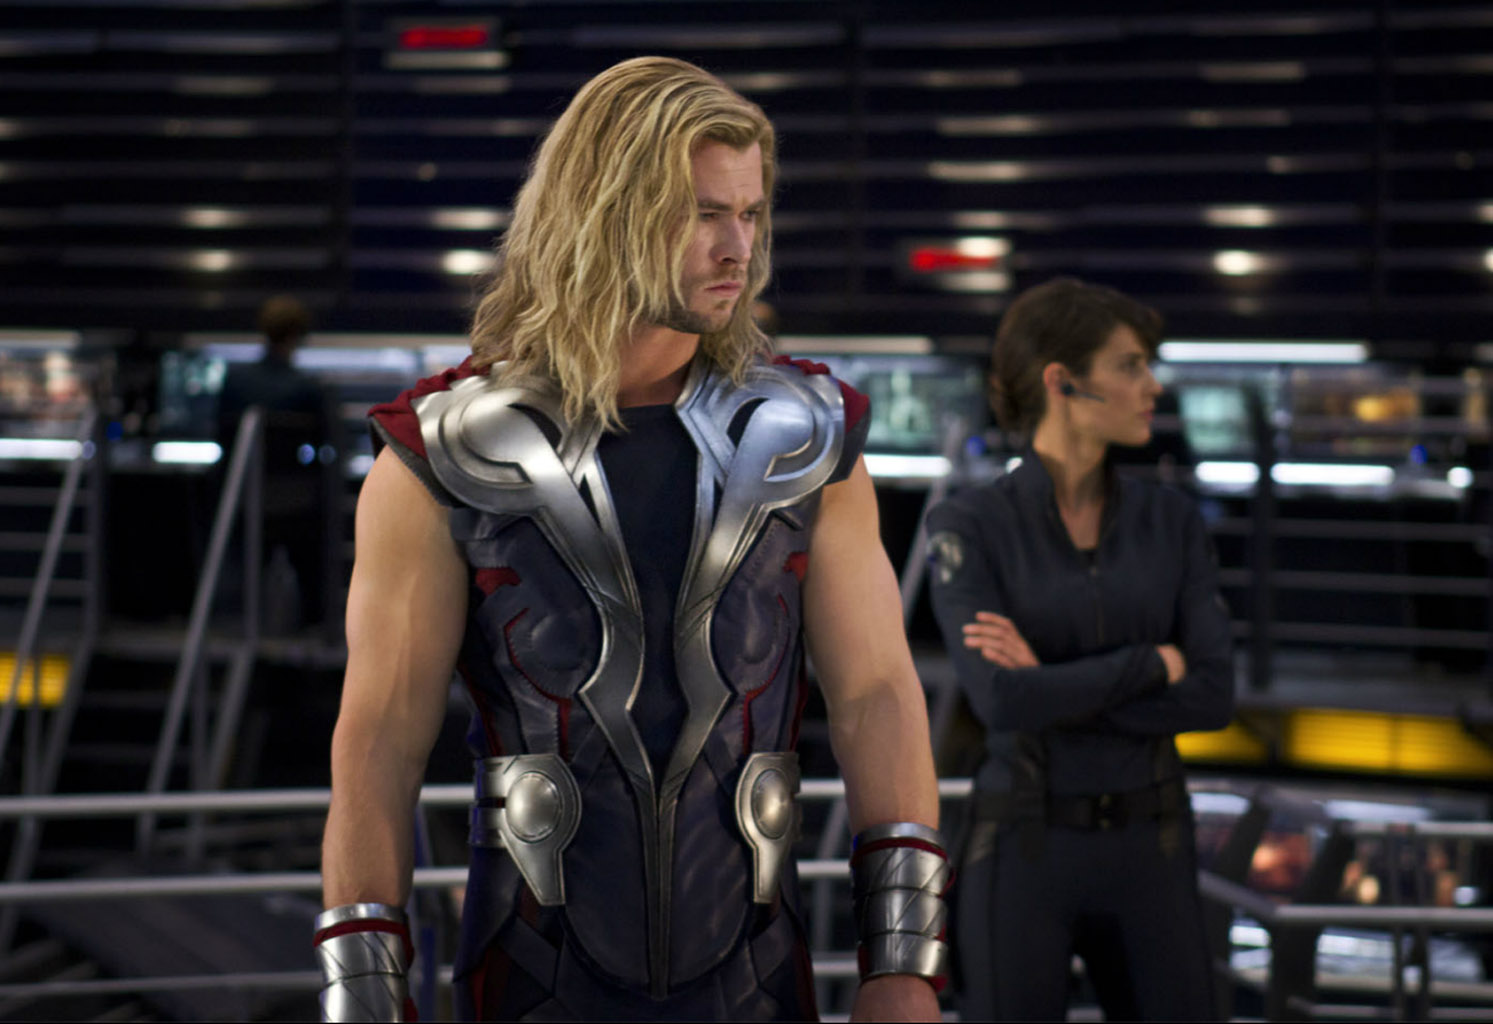 http://2.bp.blogspot.com/-K7YOgImzRyQ/T62F4u7LjaI/AAAAAAAADZY/lu4h6Sp4q-8/s1600/Marvel-The-Avengers-Movie-2012-HD-Wallpaper-Thor-The-God-of-Thunder-31.jpg